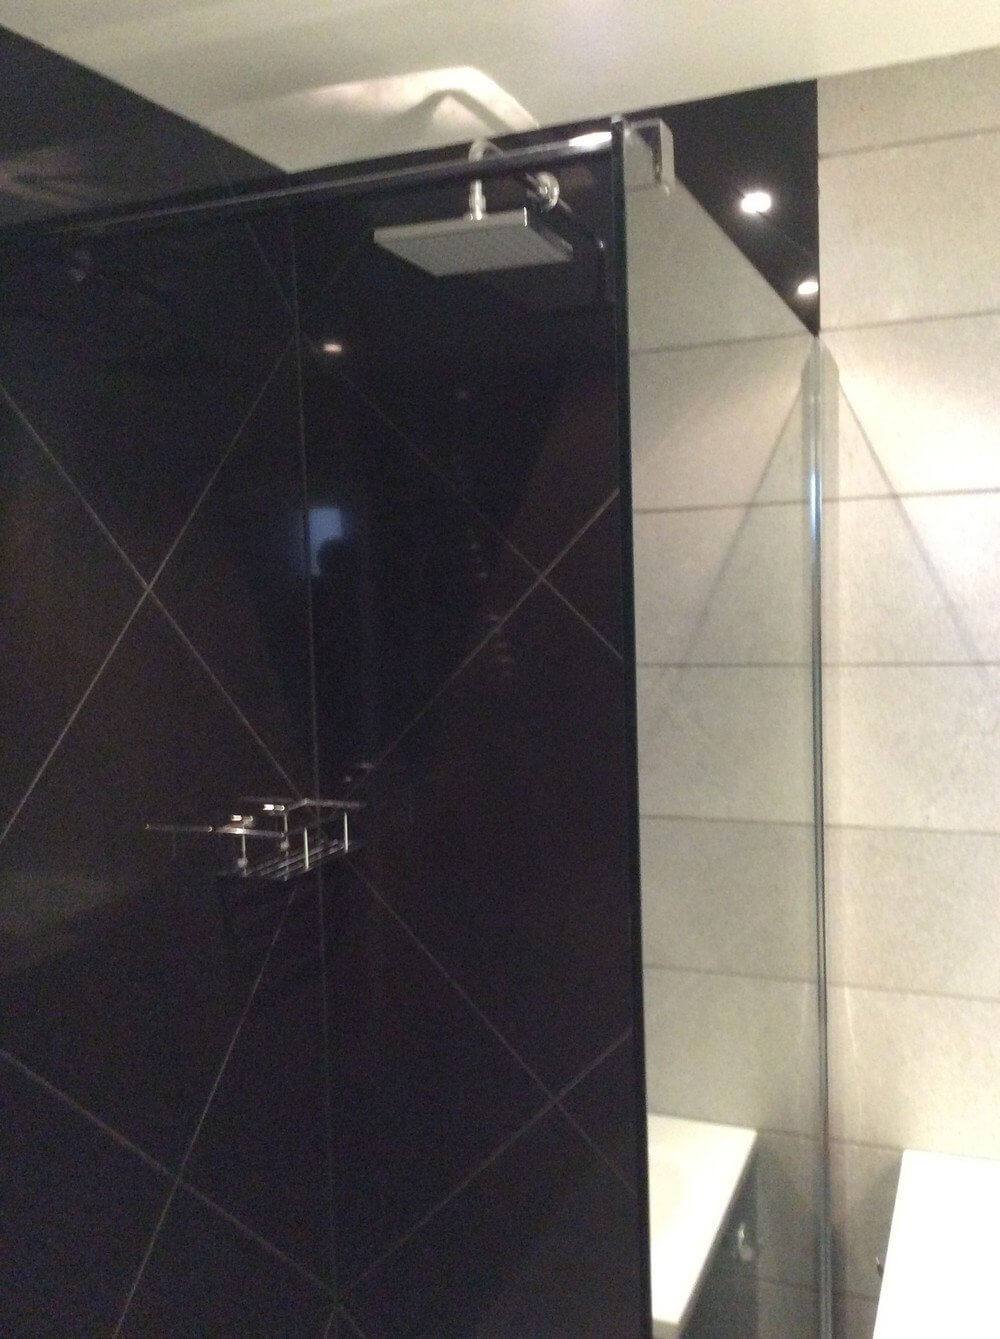 Shower and Jacuzzi Bathroom Renovation in South Kensington 1